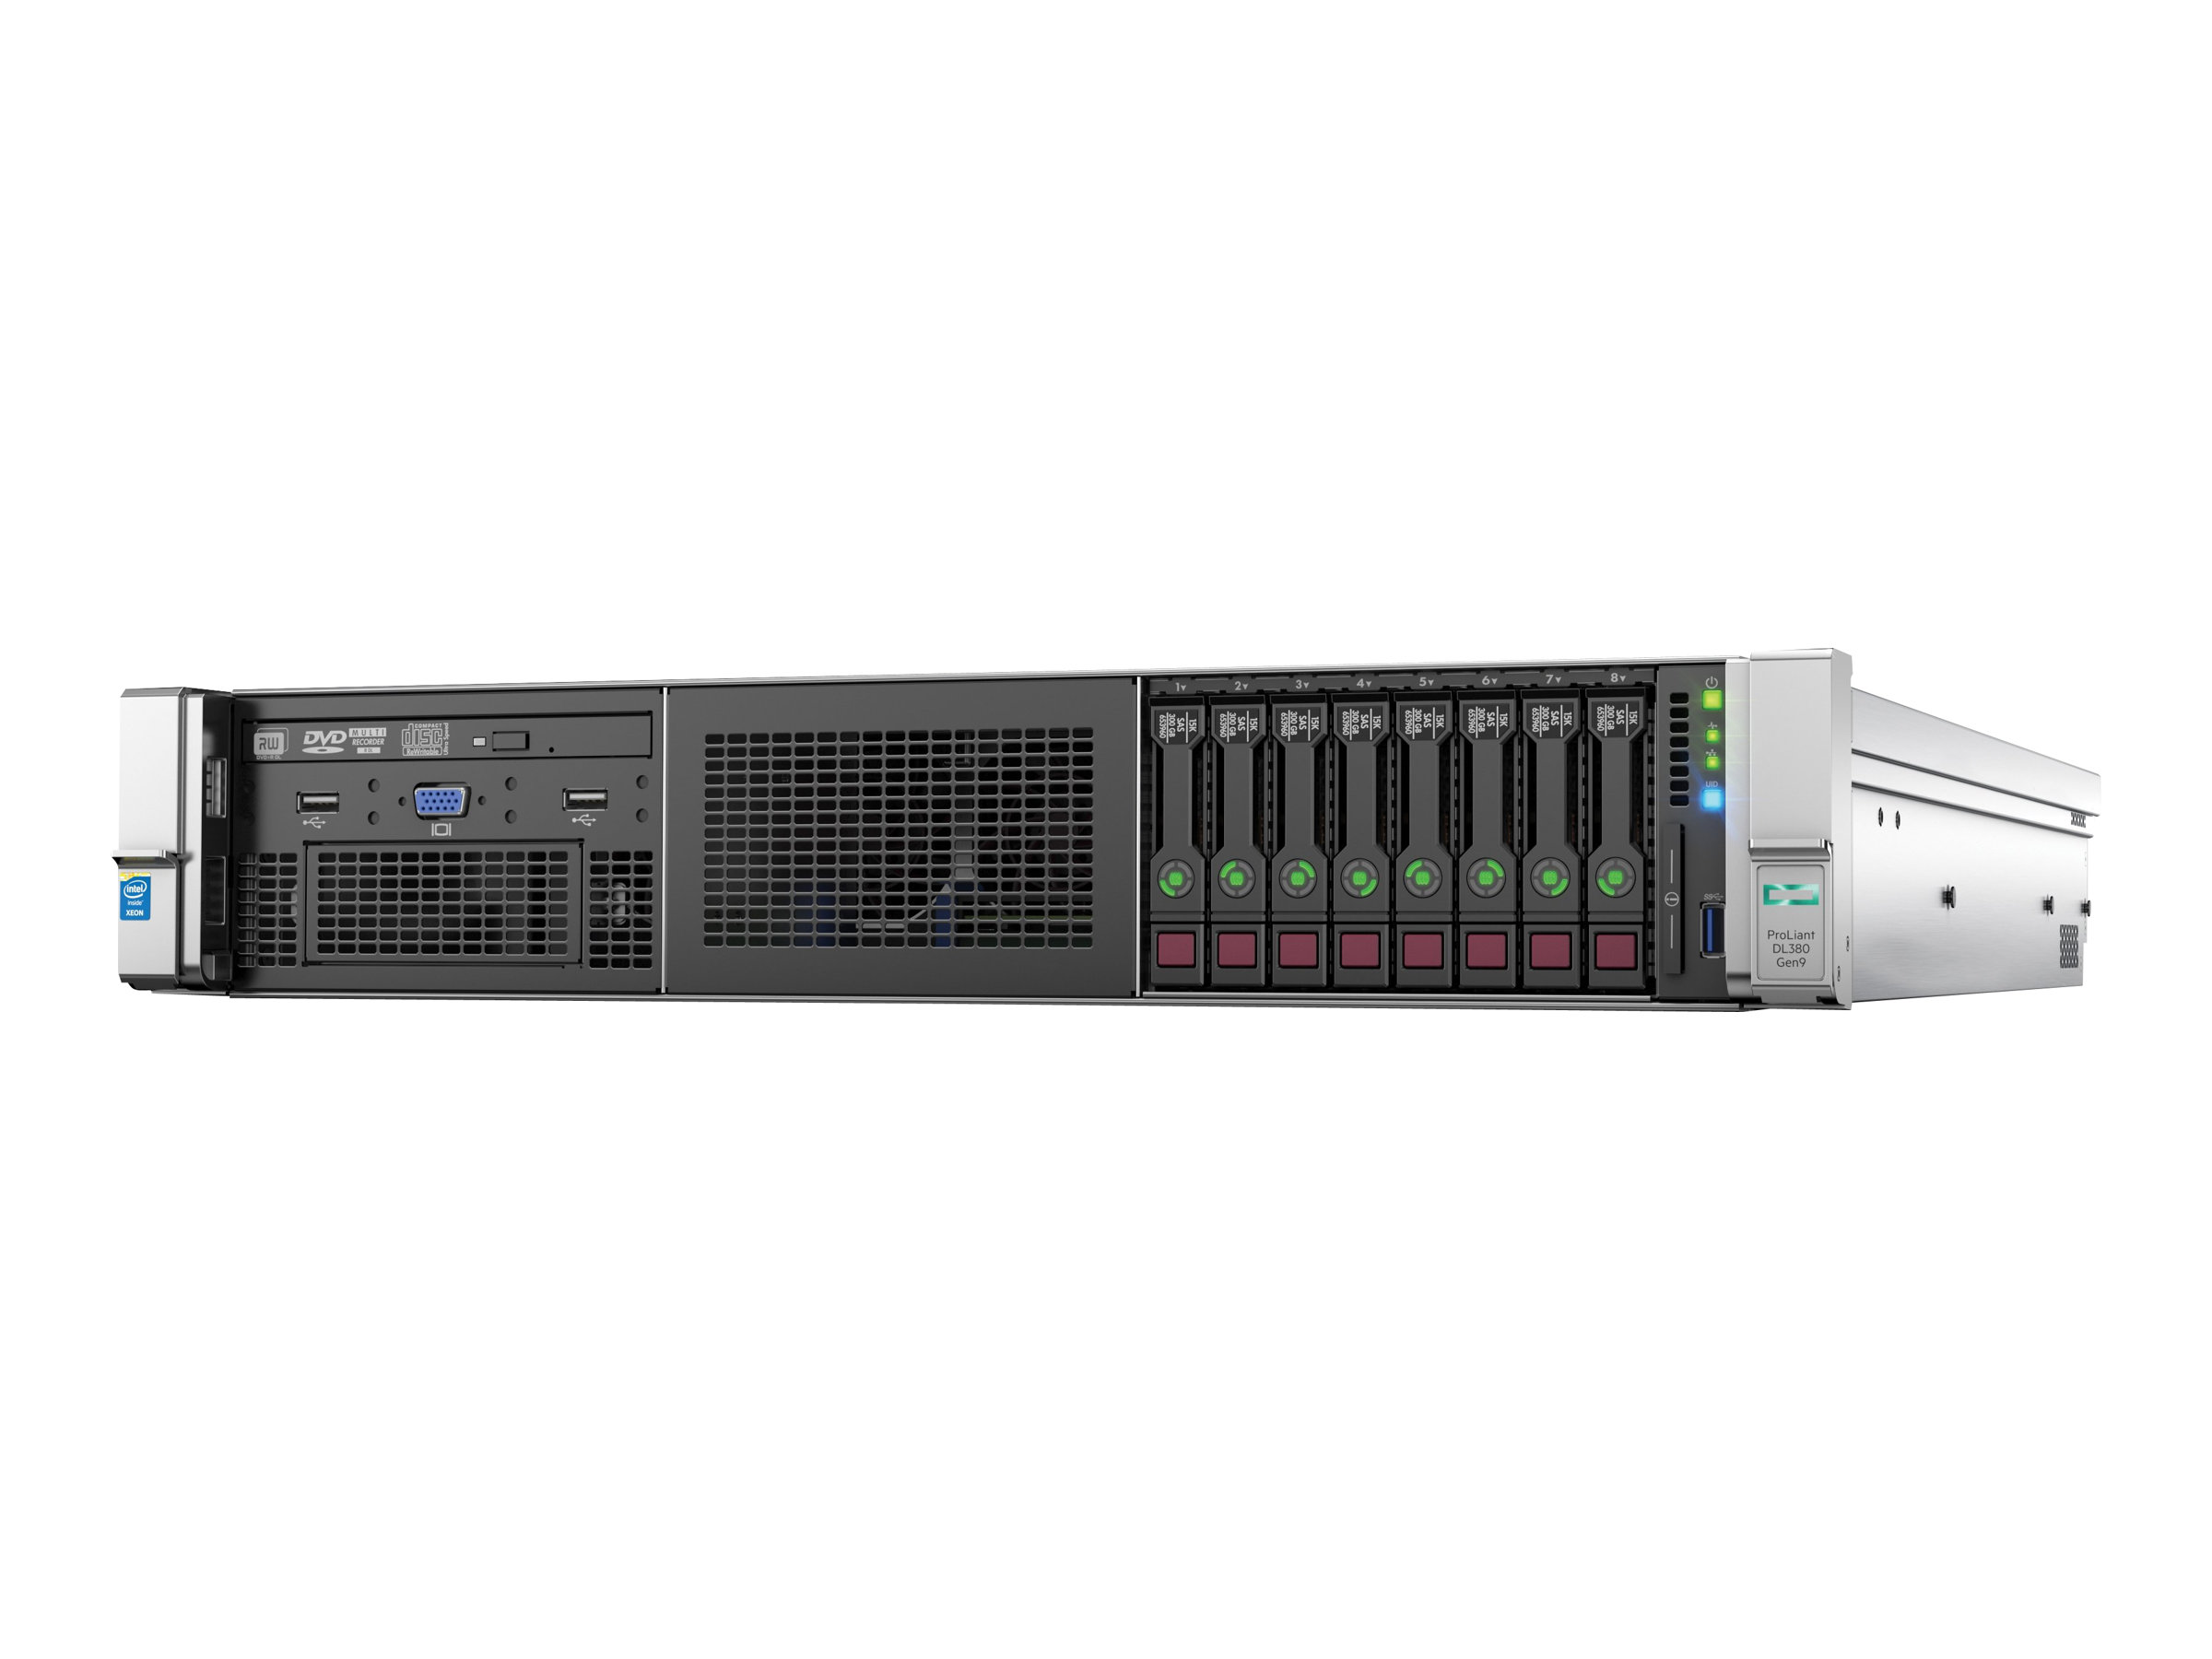 HPE ProLiant DL380 Gen9 Base - Server - Rack-Montage - 2U - zweiweg - 1 x Xeon E5-2620V3 / 2.4 GHz